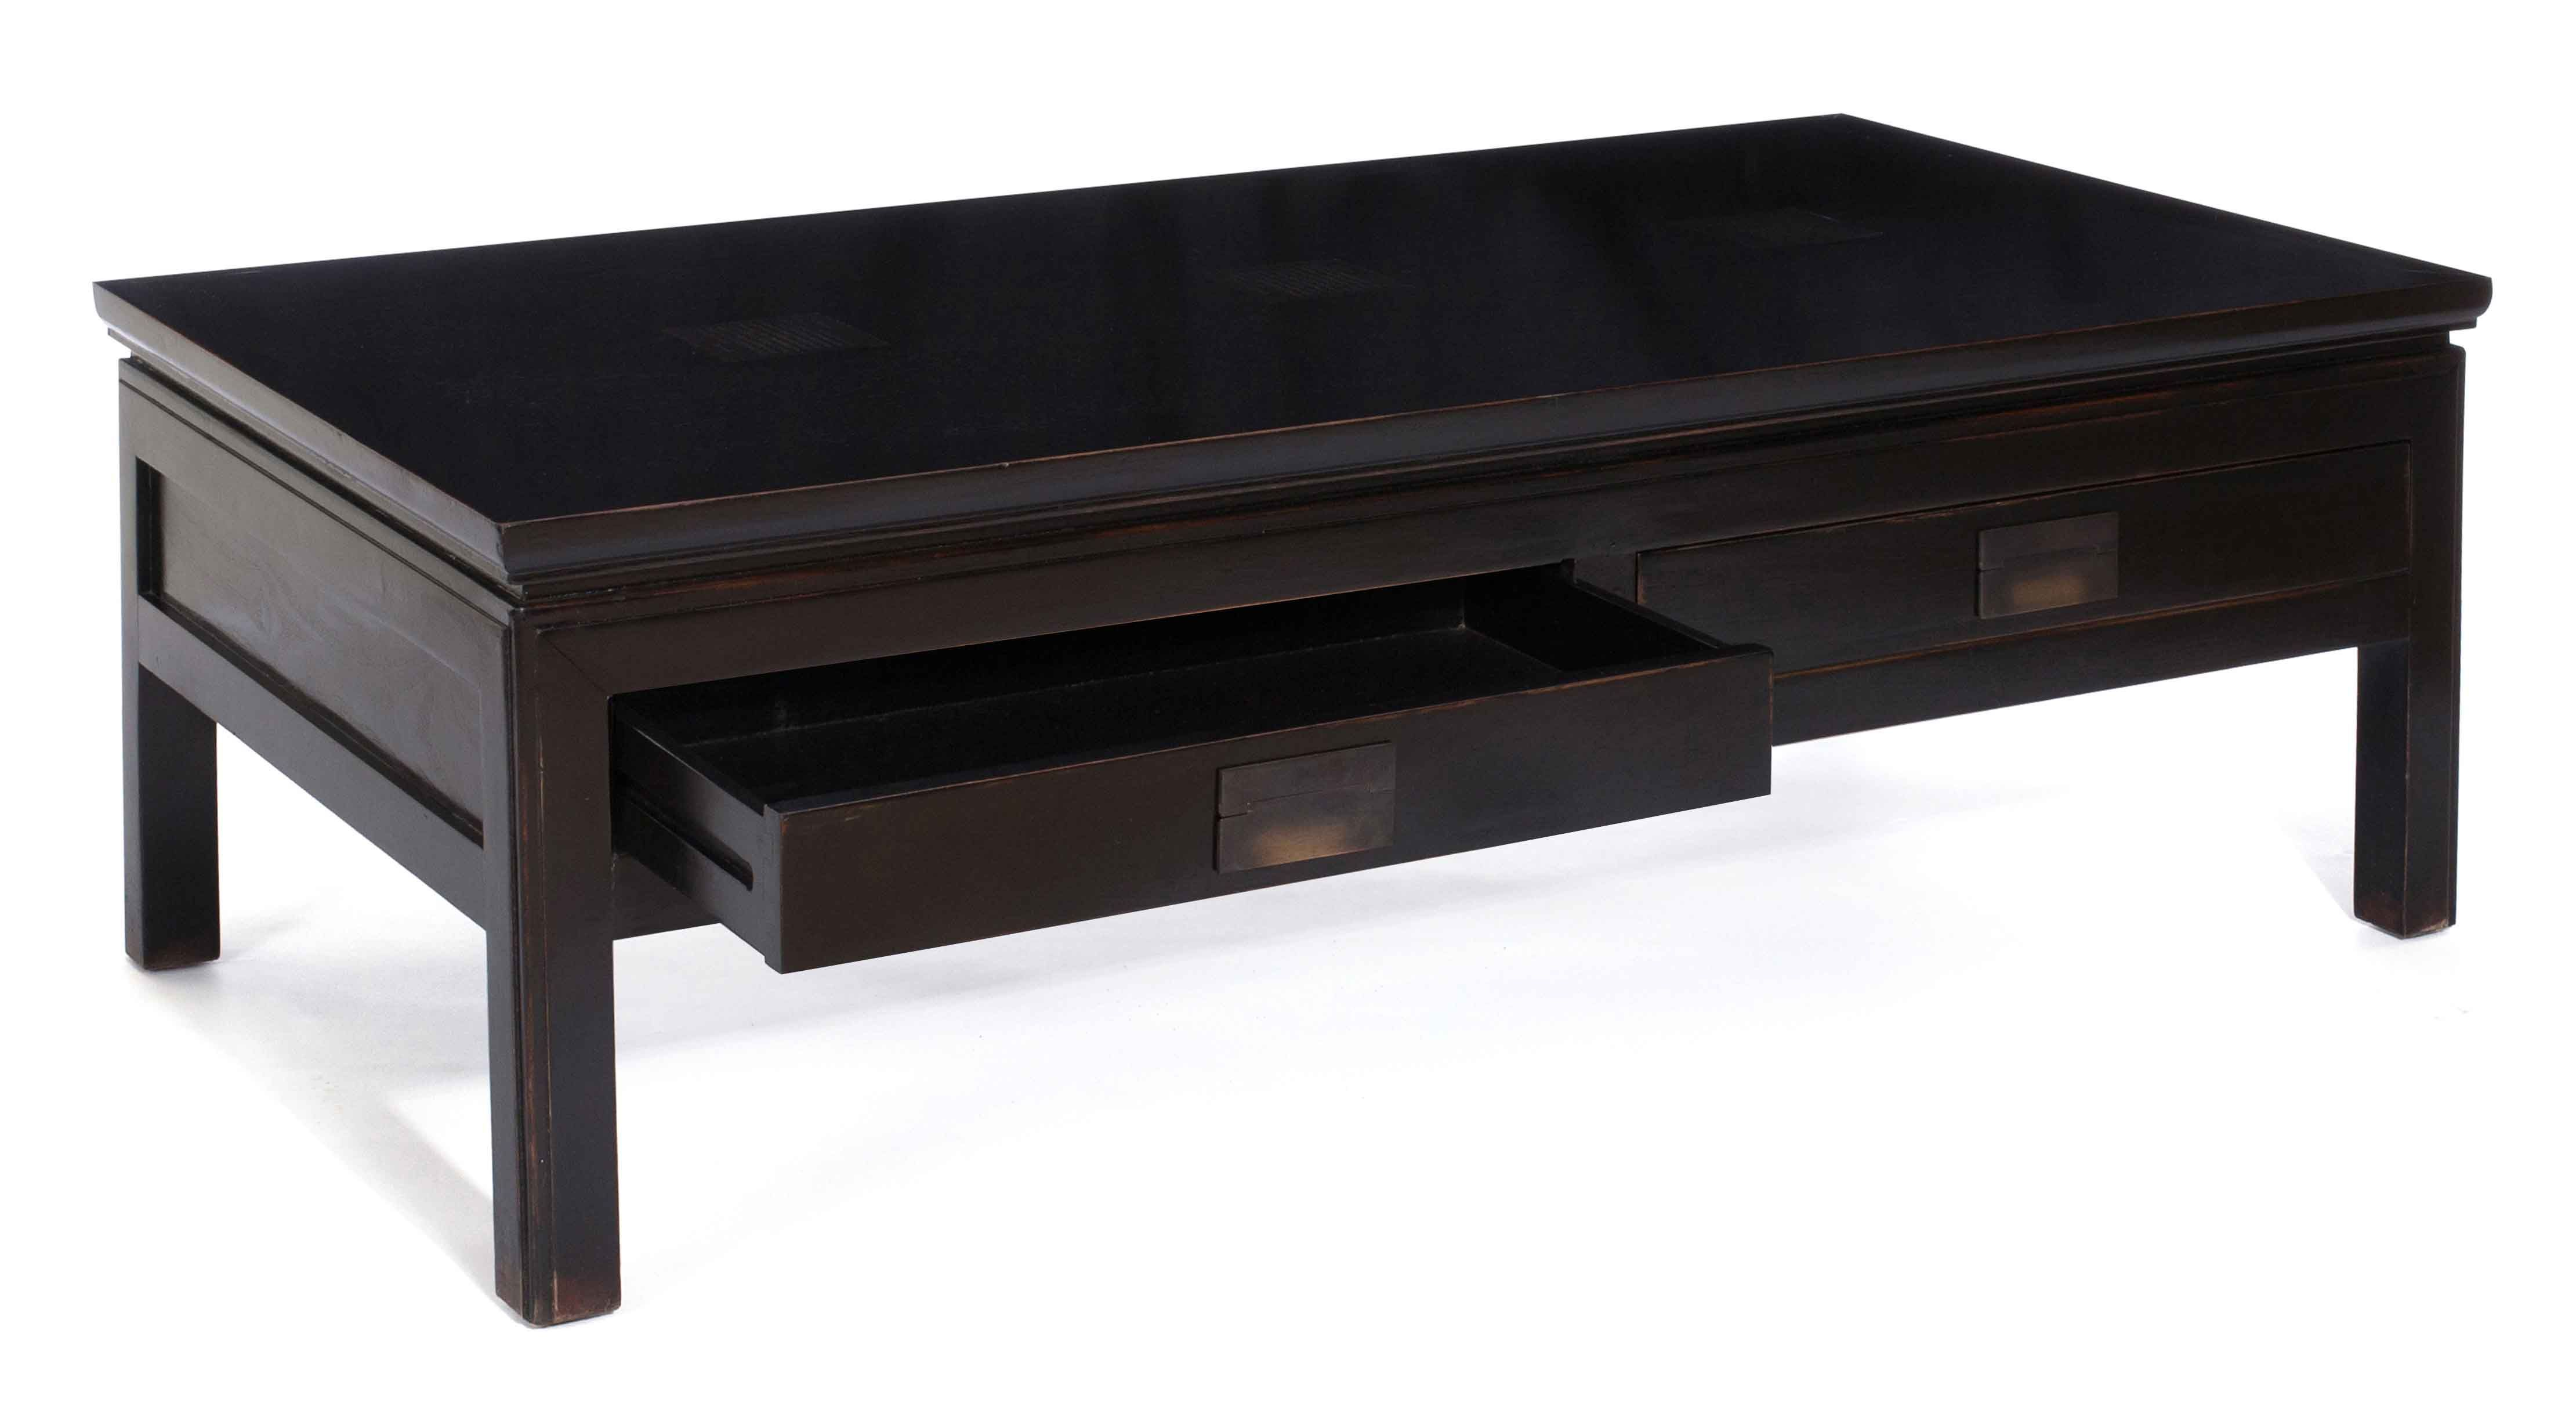 Black Lacquer Coffee Table Lombok Google Search Coffee Table